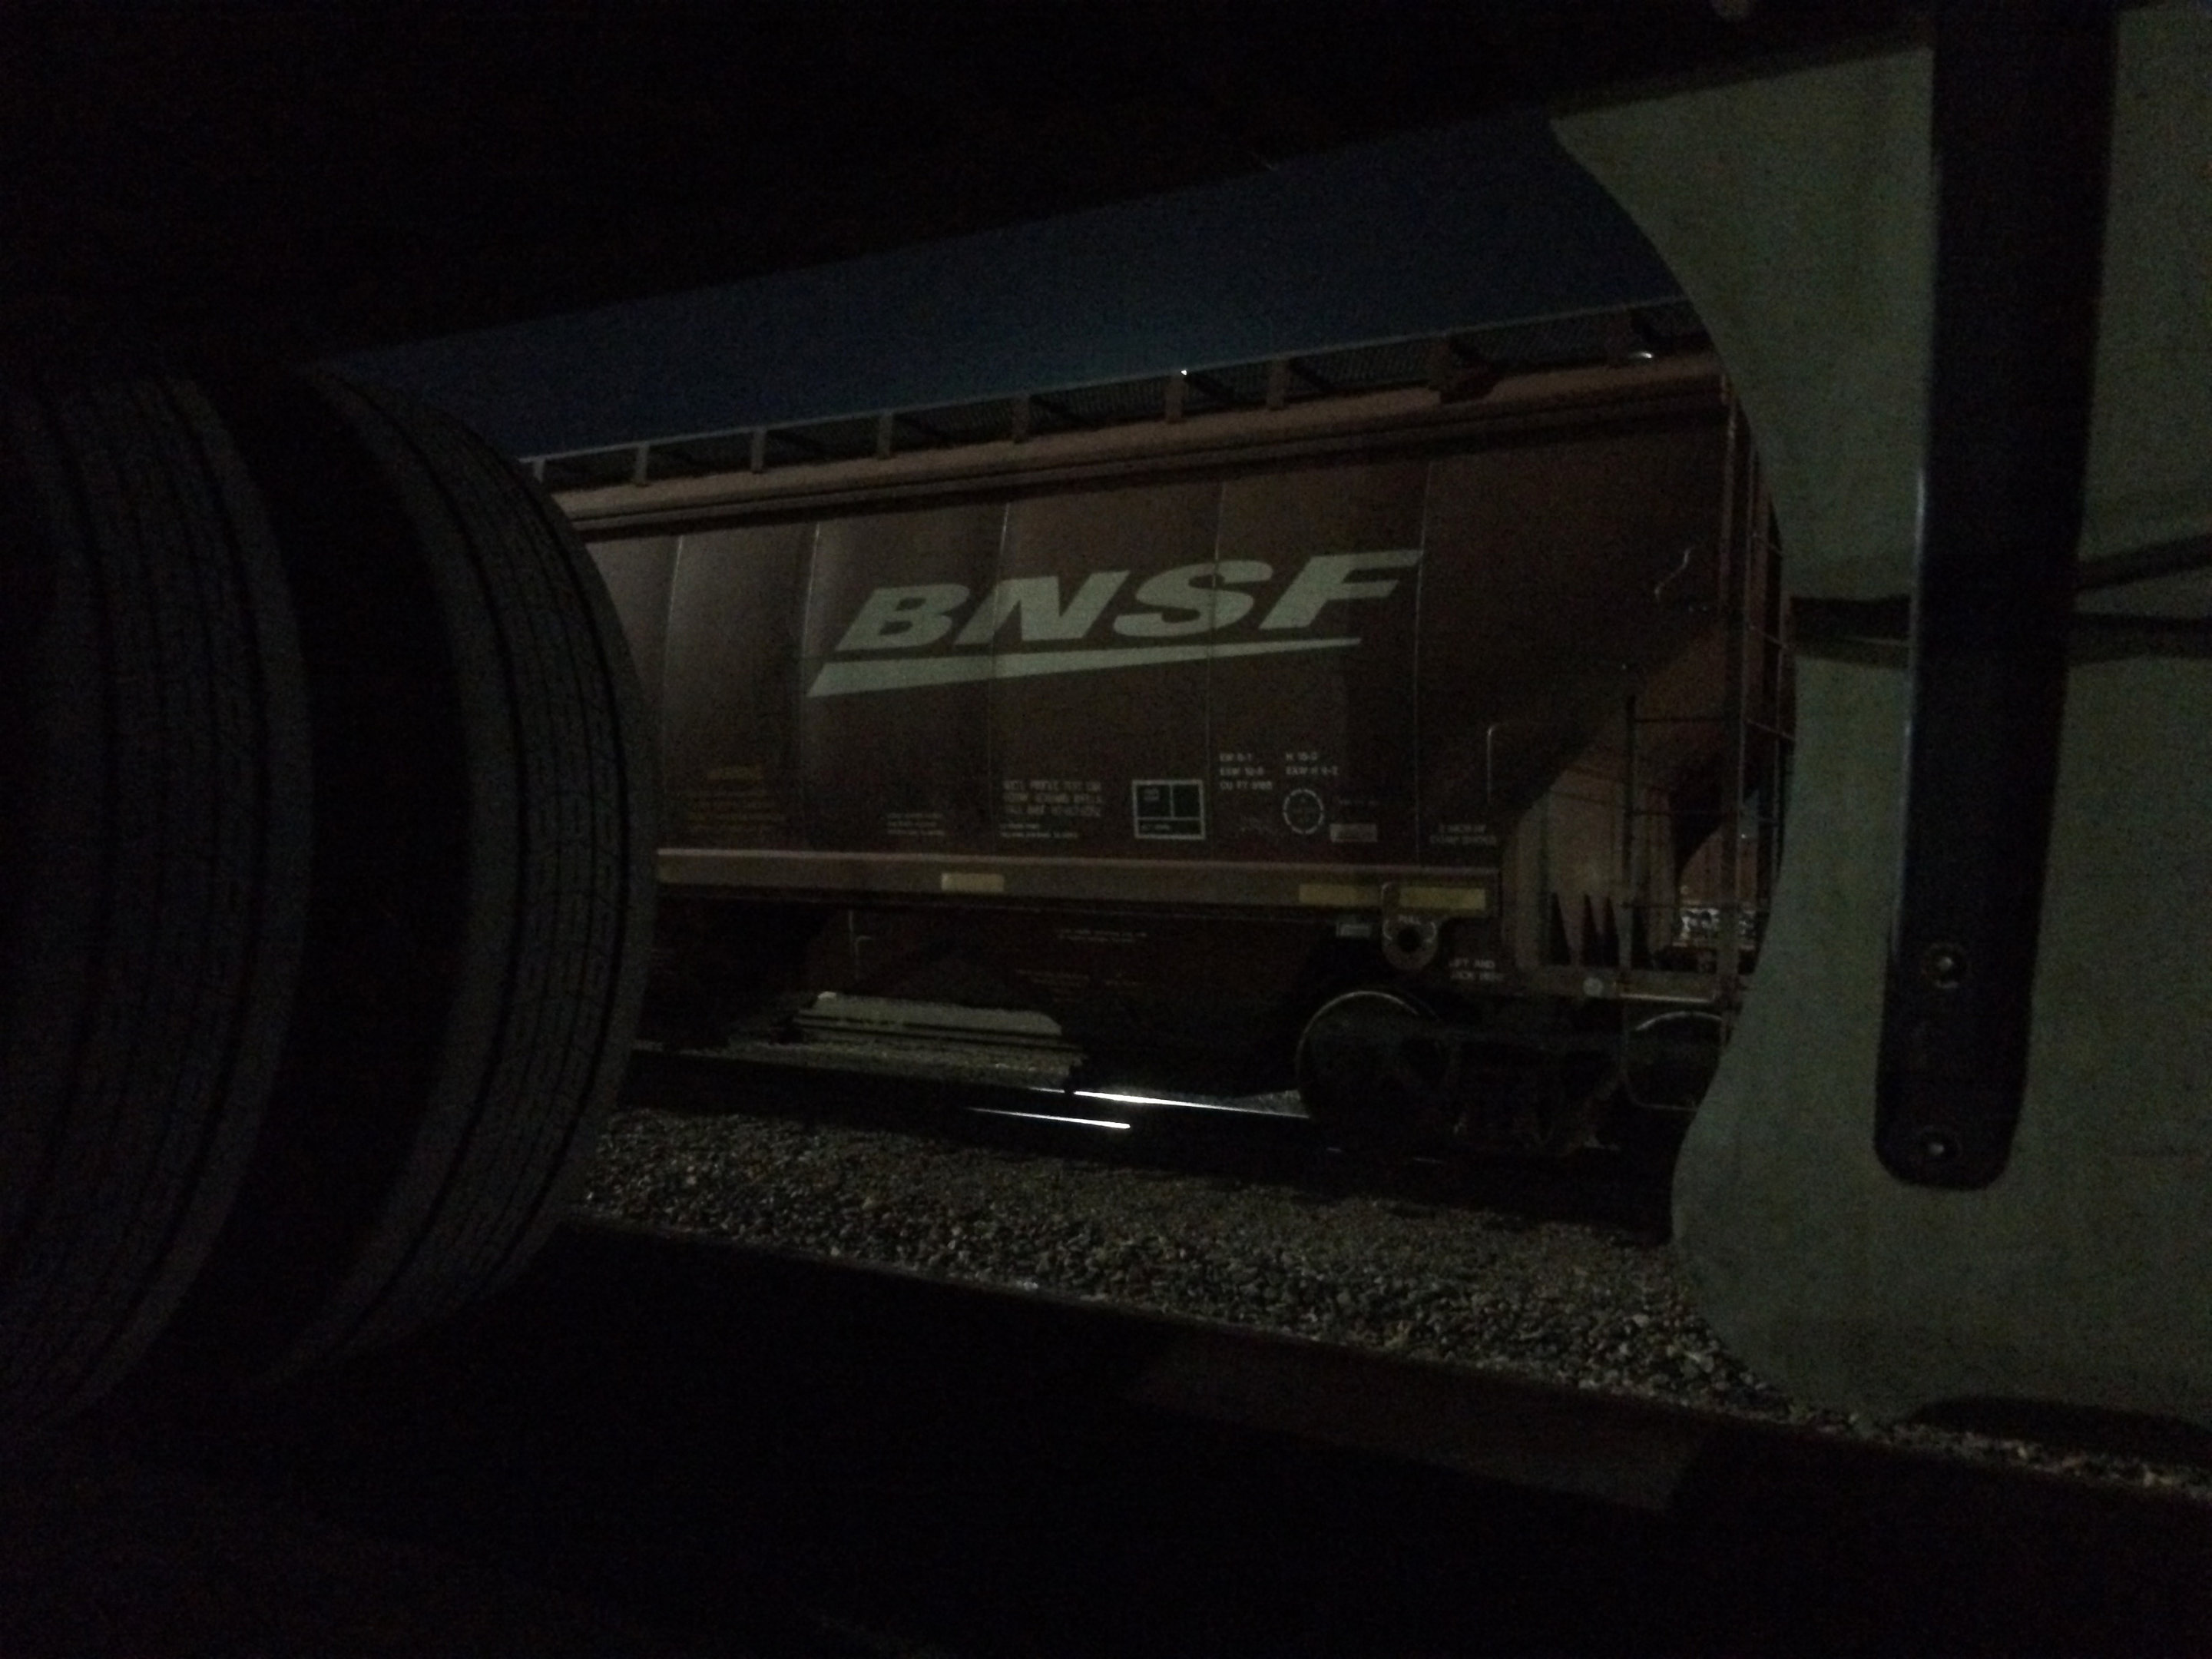 3-jpg.52529_Wisconsin to Montana Freight Hop, Hi-Line Subdivision_Travel Stories_Squat the Planet_12:11 PM